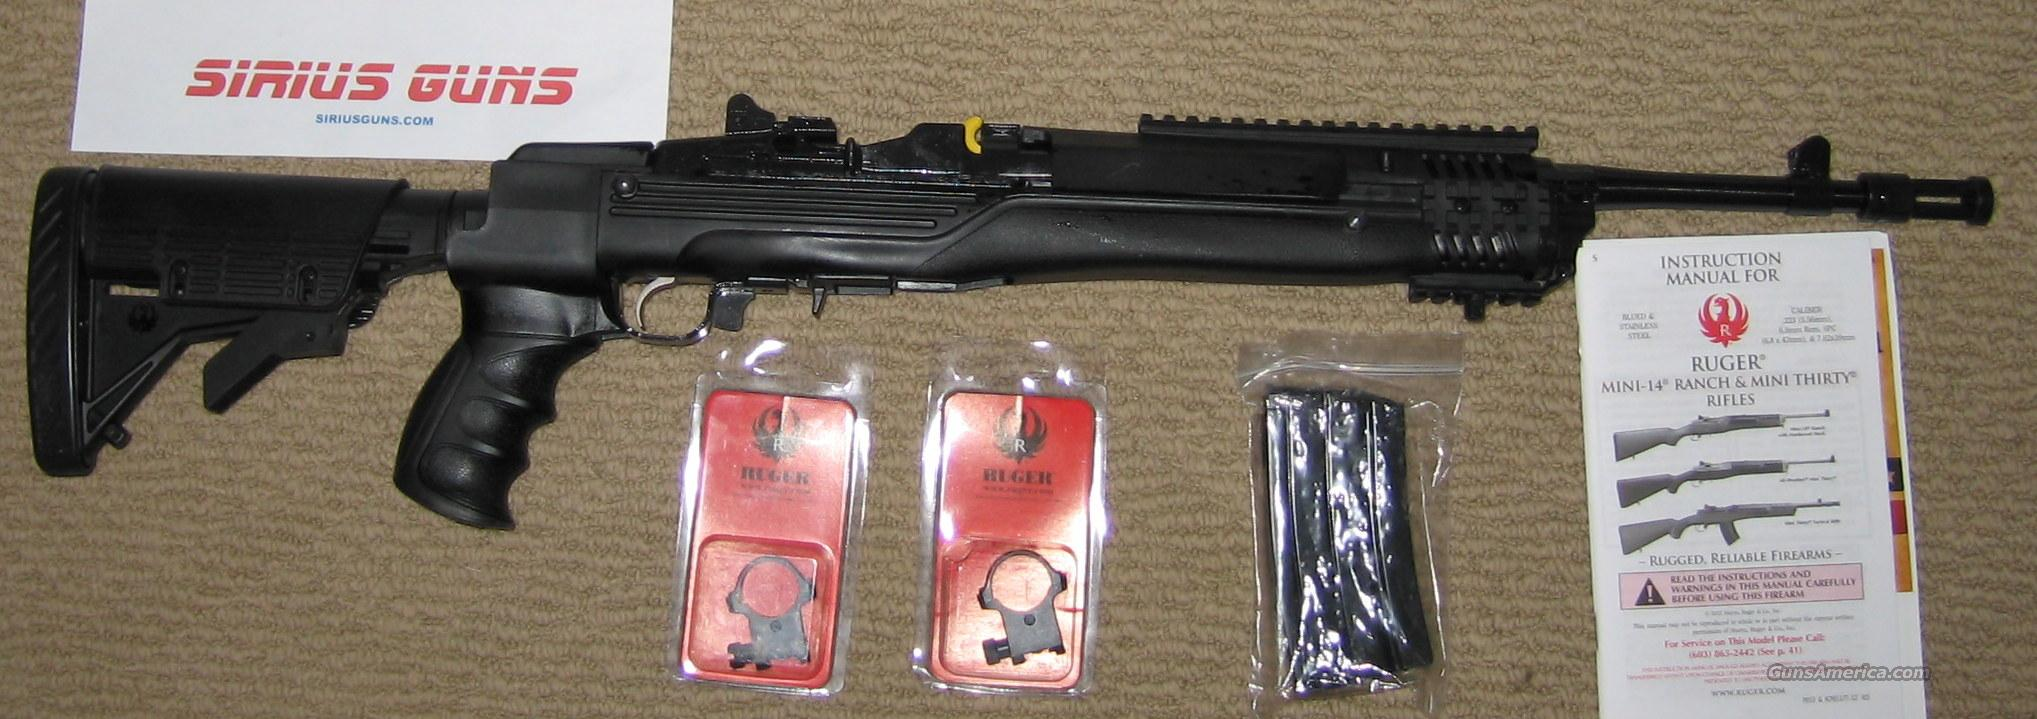 ruger mini 14 tactical ar 15 style ati folding for sale rh gunsamerica com ruger mini 14 tactical owners manual Ruger Mini-14 Tactical Sniper Rifle